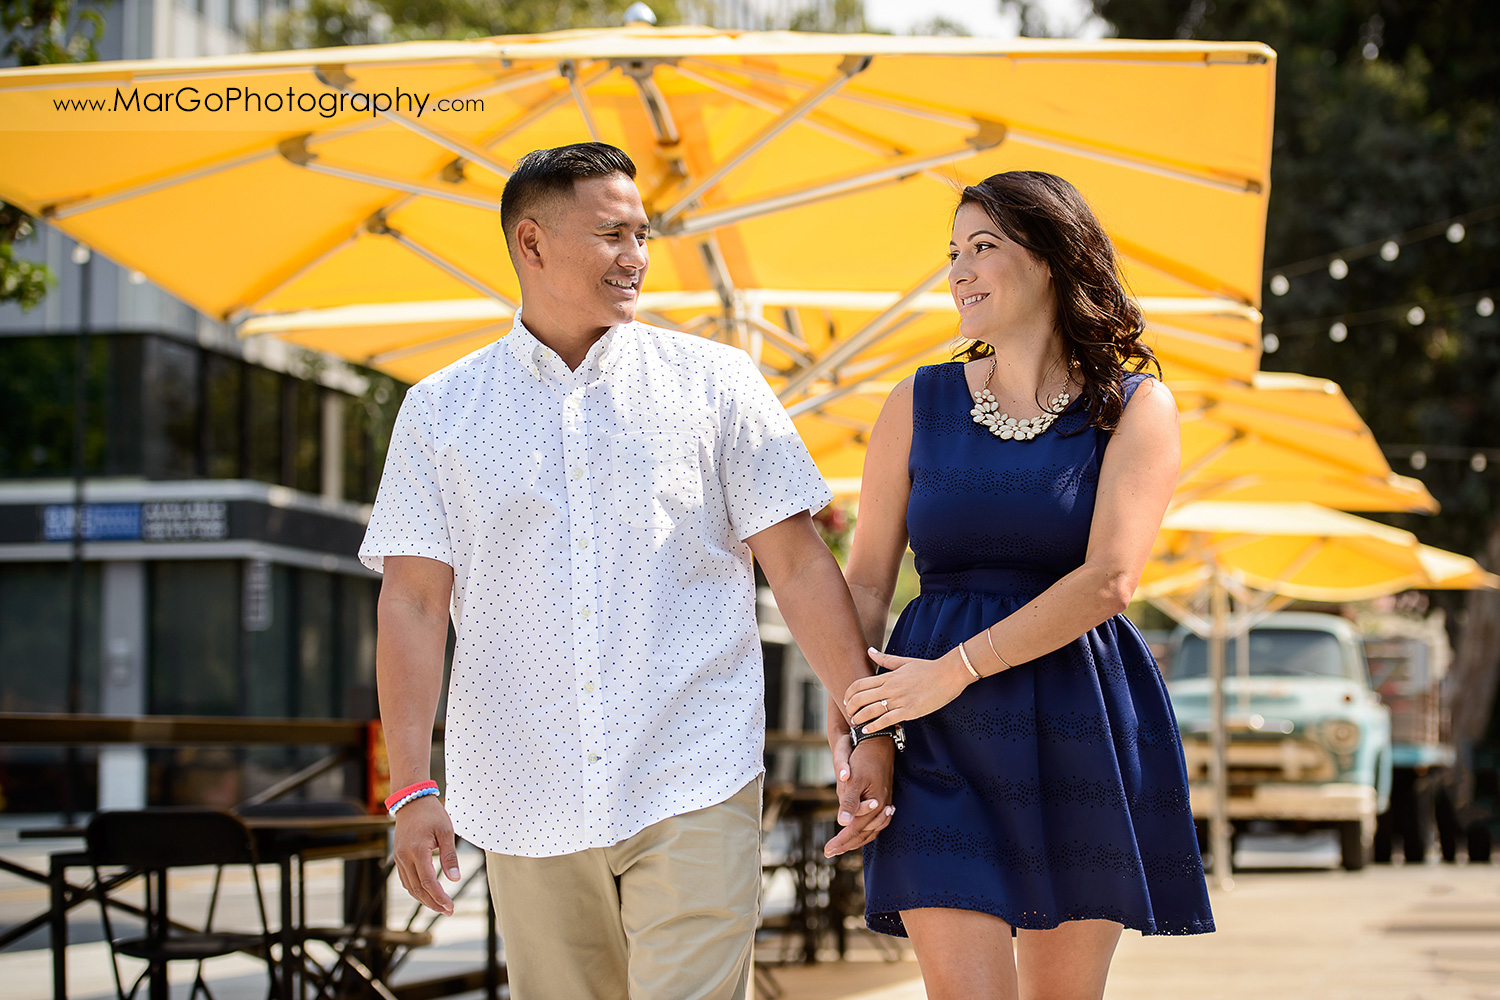 woman in blue dress and man in white shirt holding hands and walking with yellow umbrellas in background during engagement session at San Pedro Square Market in San Jose